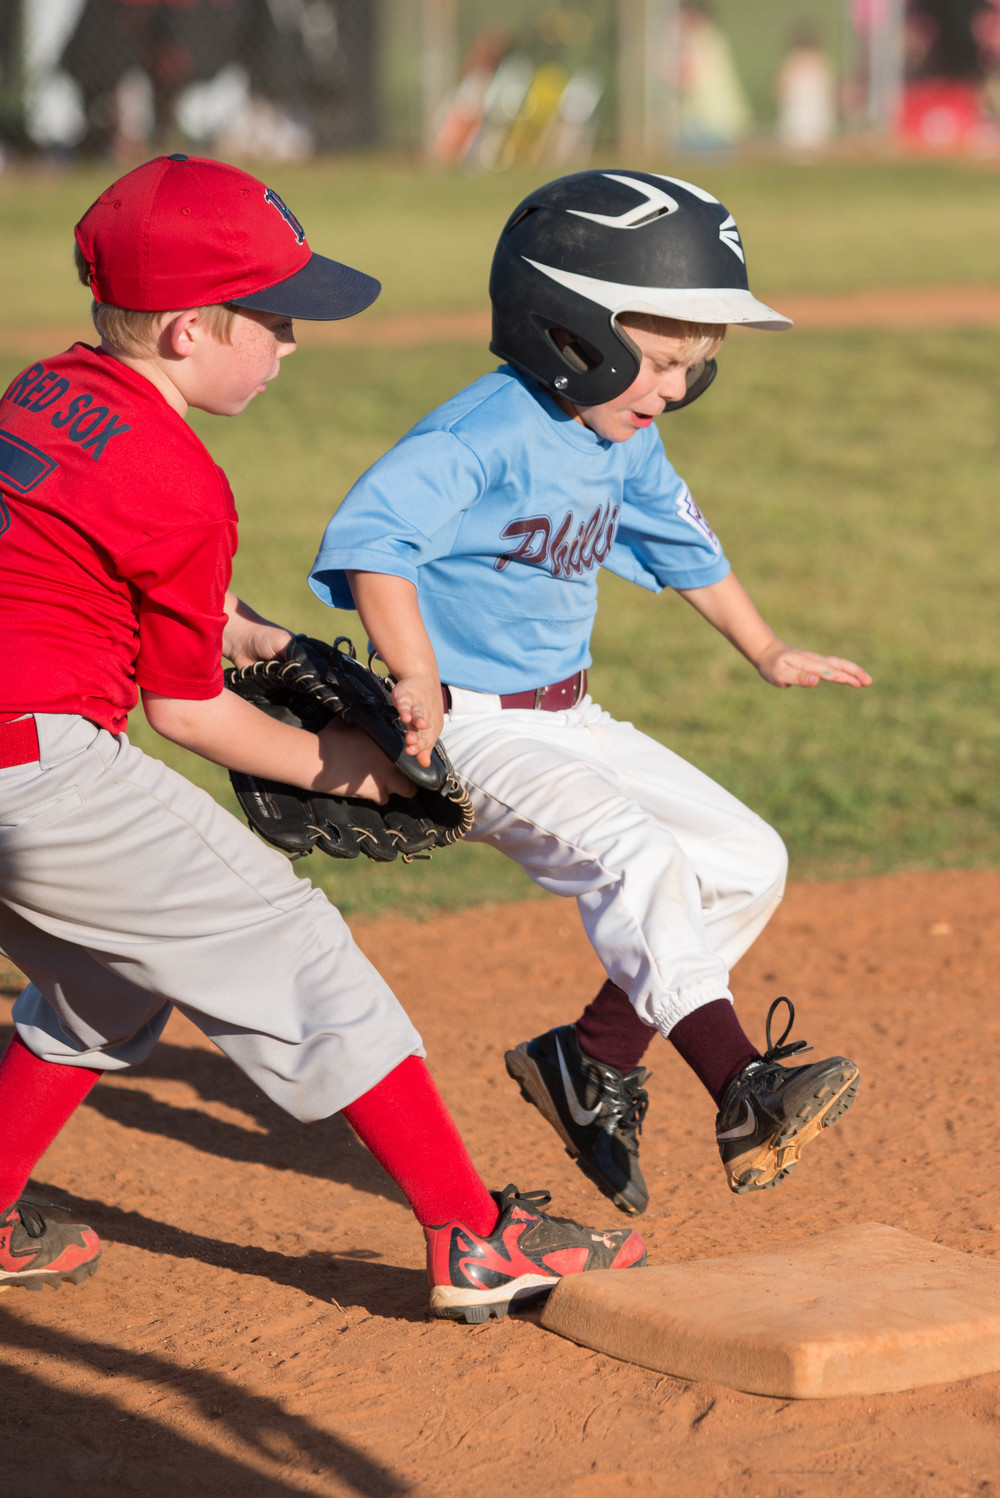 WRALL Warner Robins Little League | Sports Photography 4